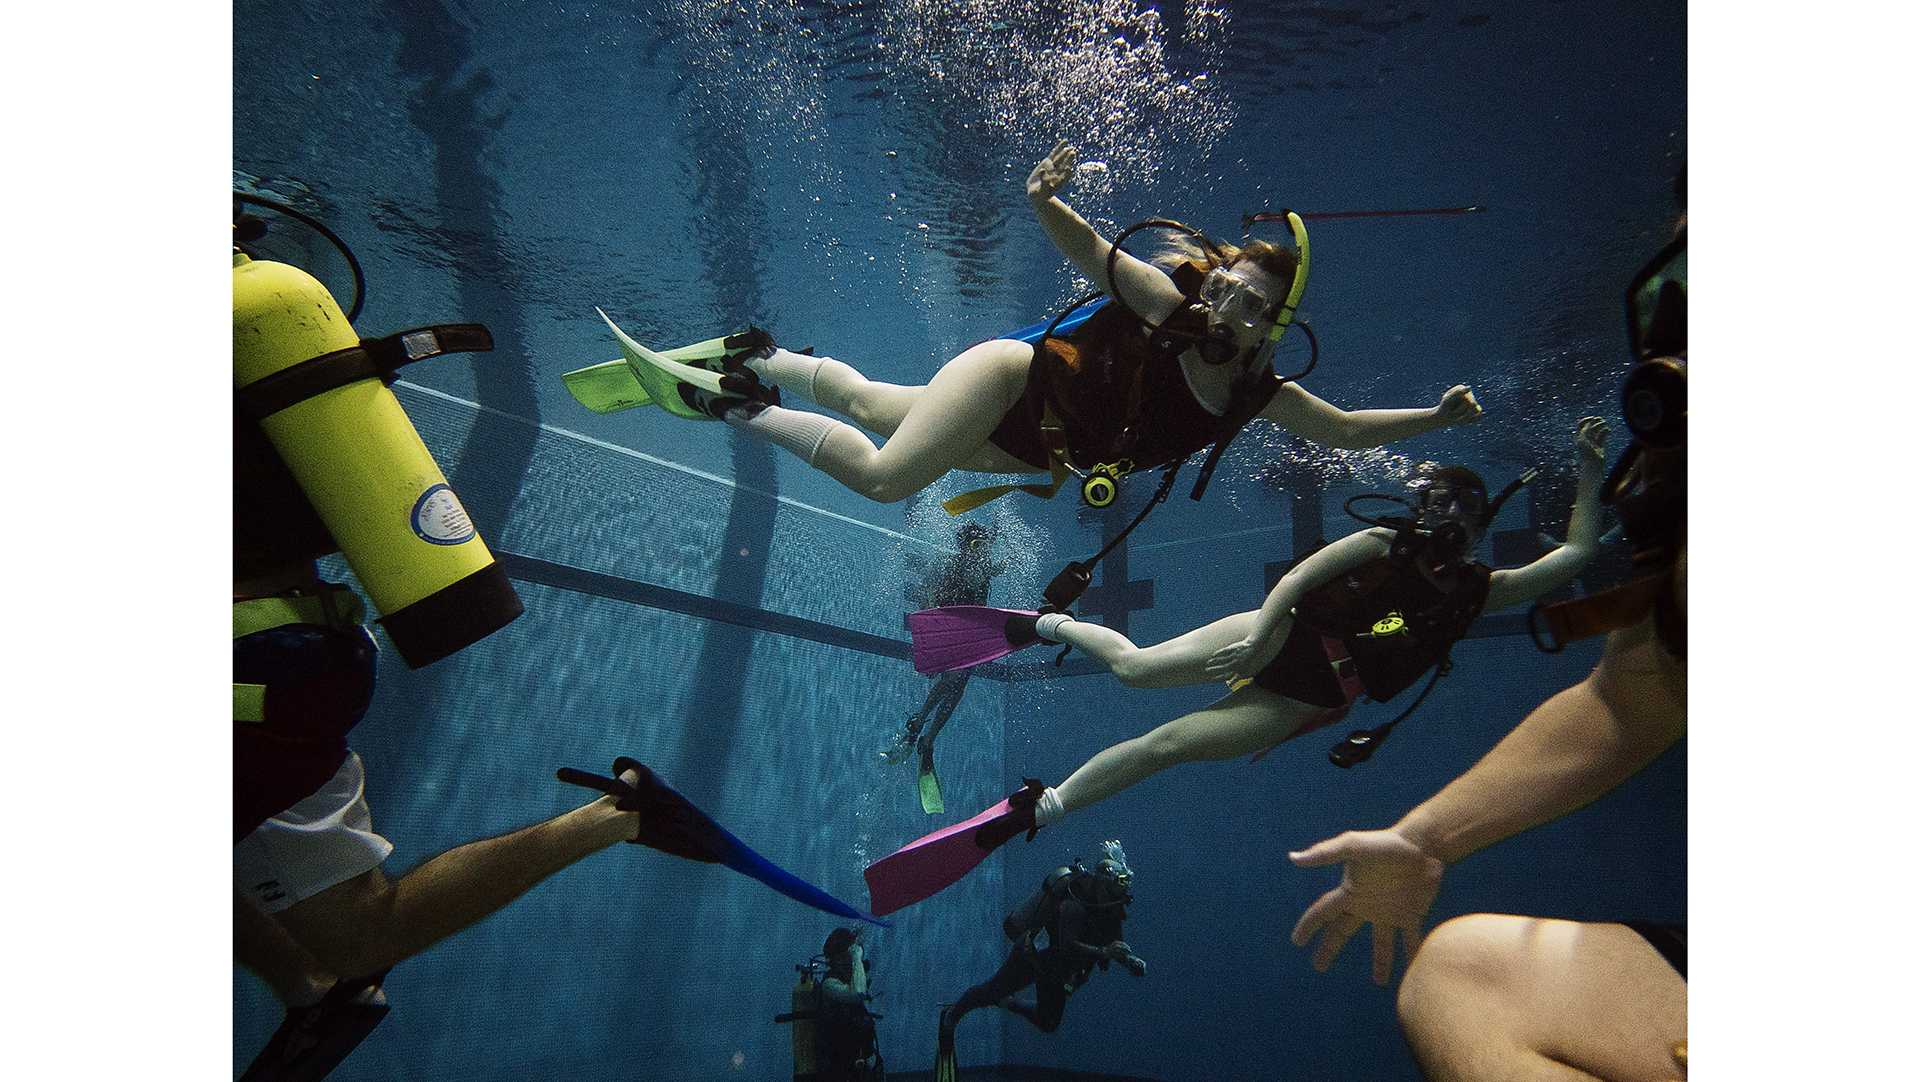 Students enjoy a period of free swimming at the CRWC on Tuesday, April 24, 2018. This was one of the class' last practice sessions before their open water certification at Lake Pearl, Illinois this summer. (James Year/The Daily Iowan)